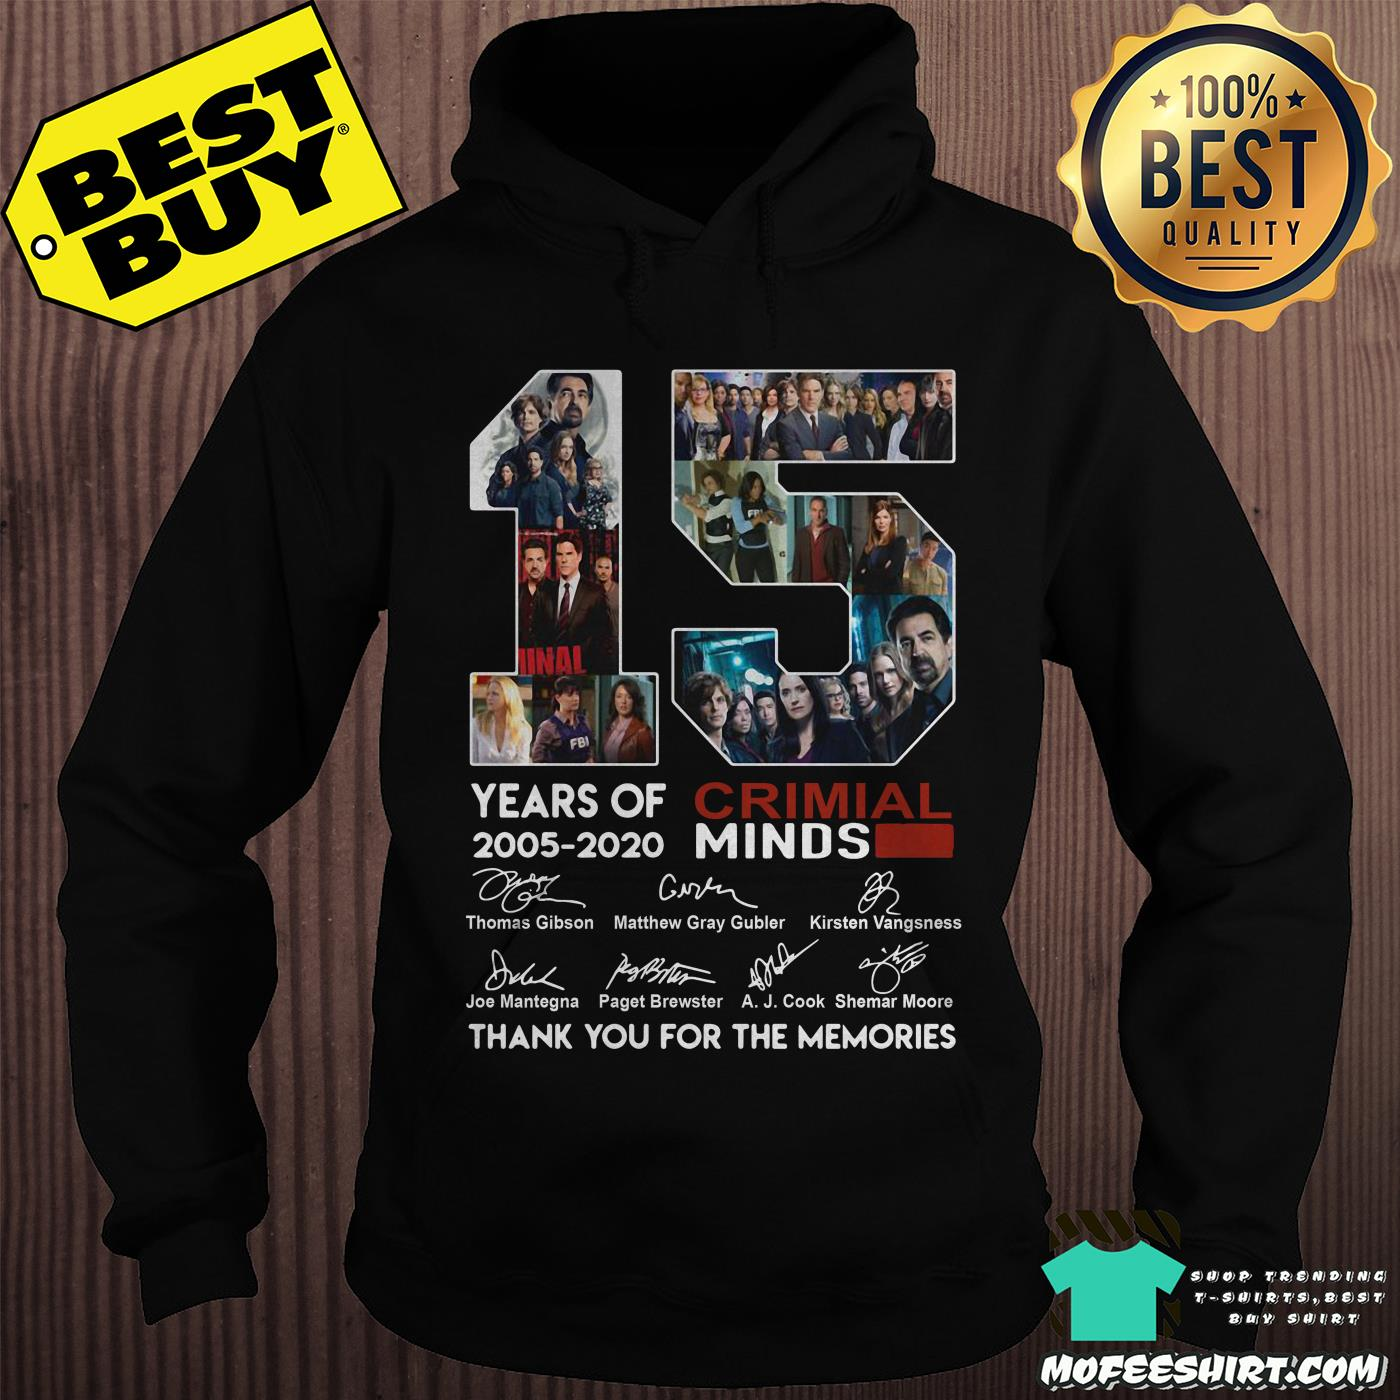 15 years of criminal minds 2005 2020 thank you for the memories hoodie - 15 years of Criminal Minds 2005-2020 thank you for the memories signature shirt